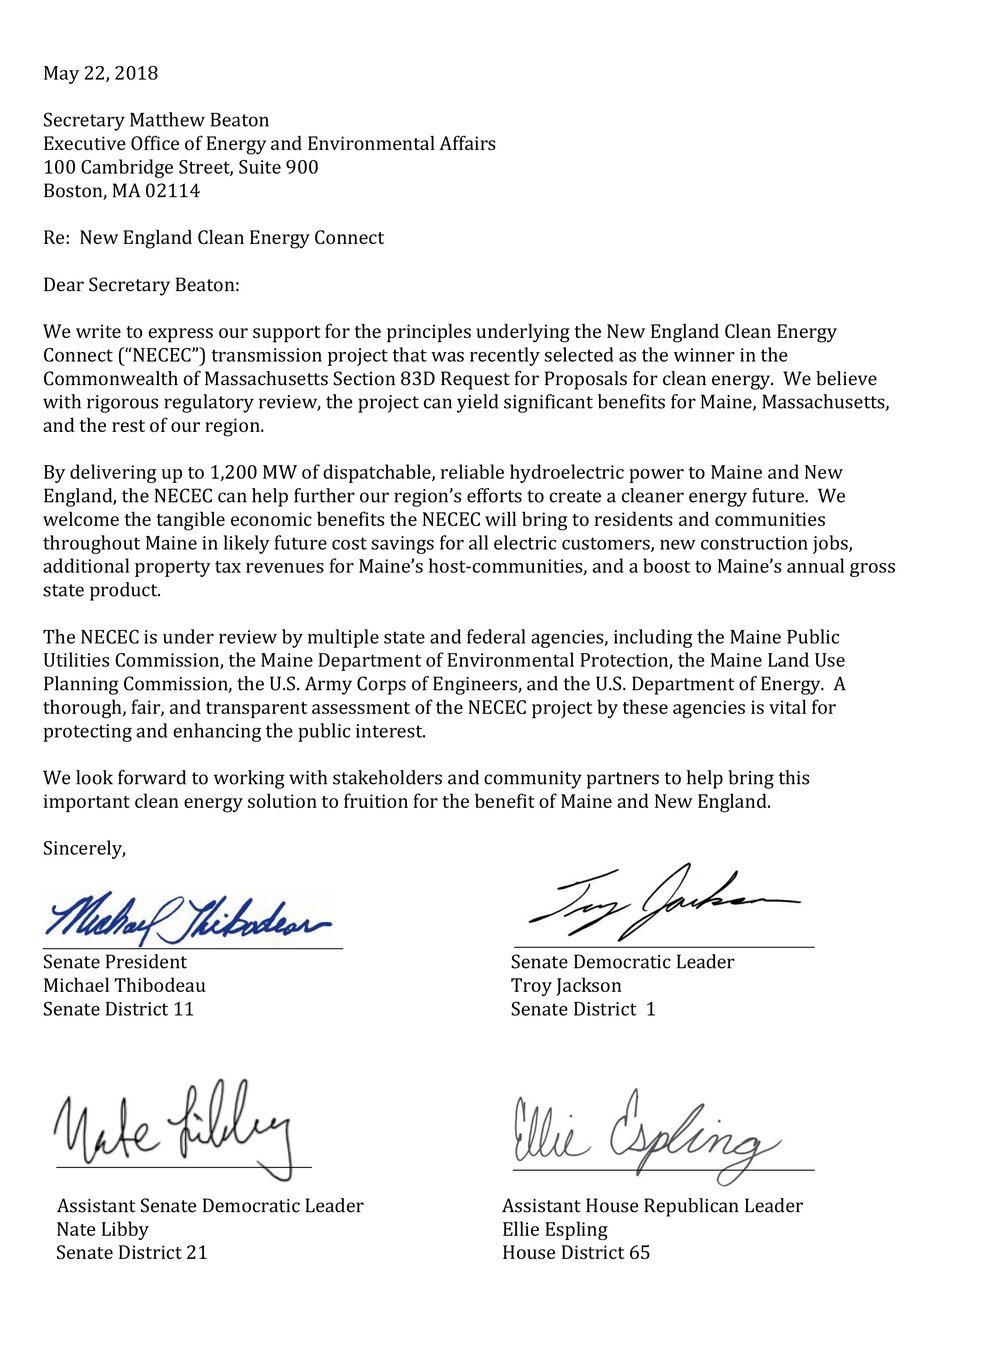 NECEC.Legislative.Support.Letter.5.22.18.jpg